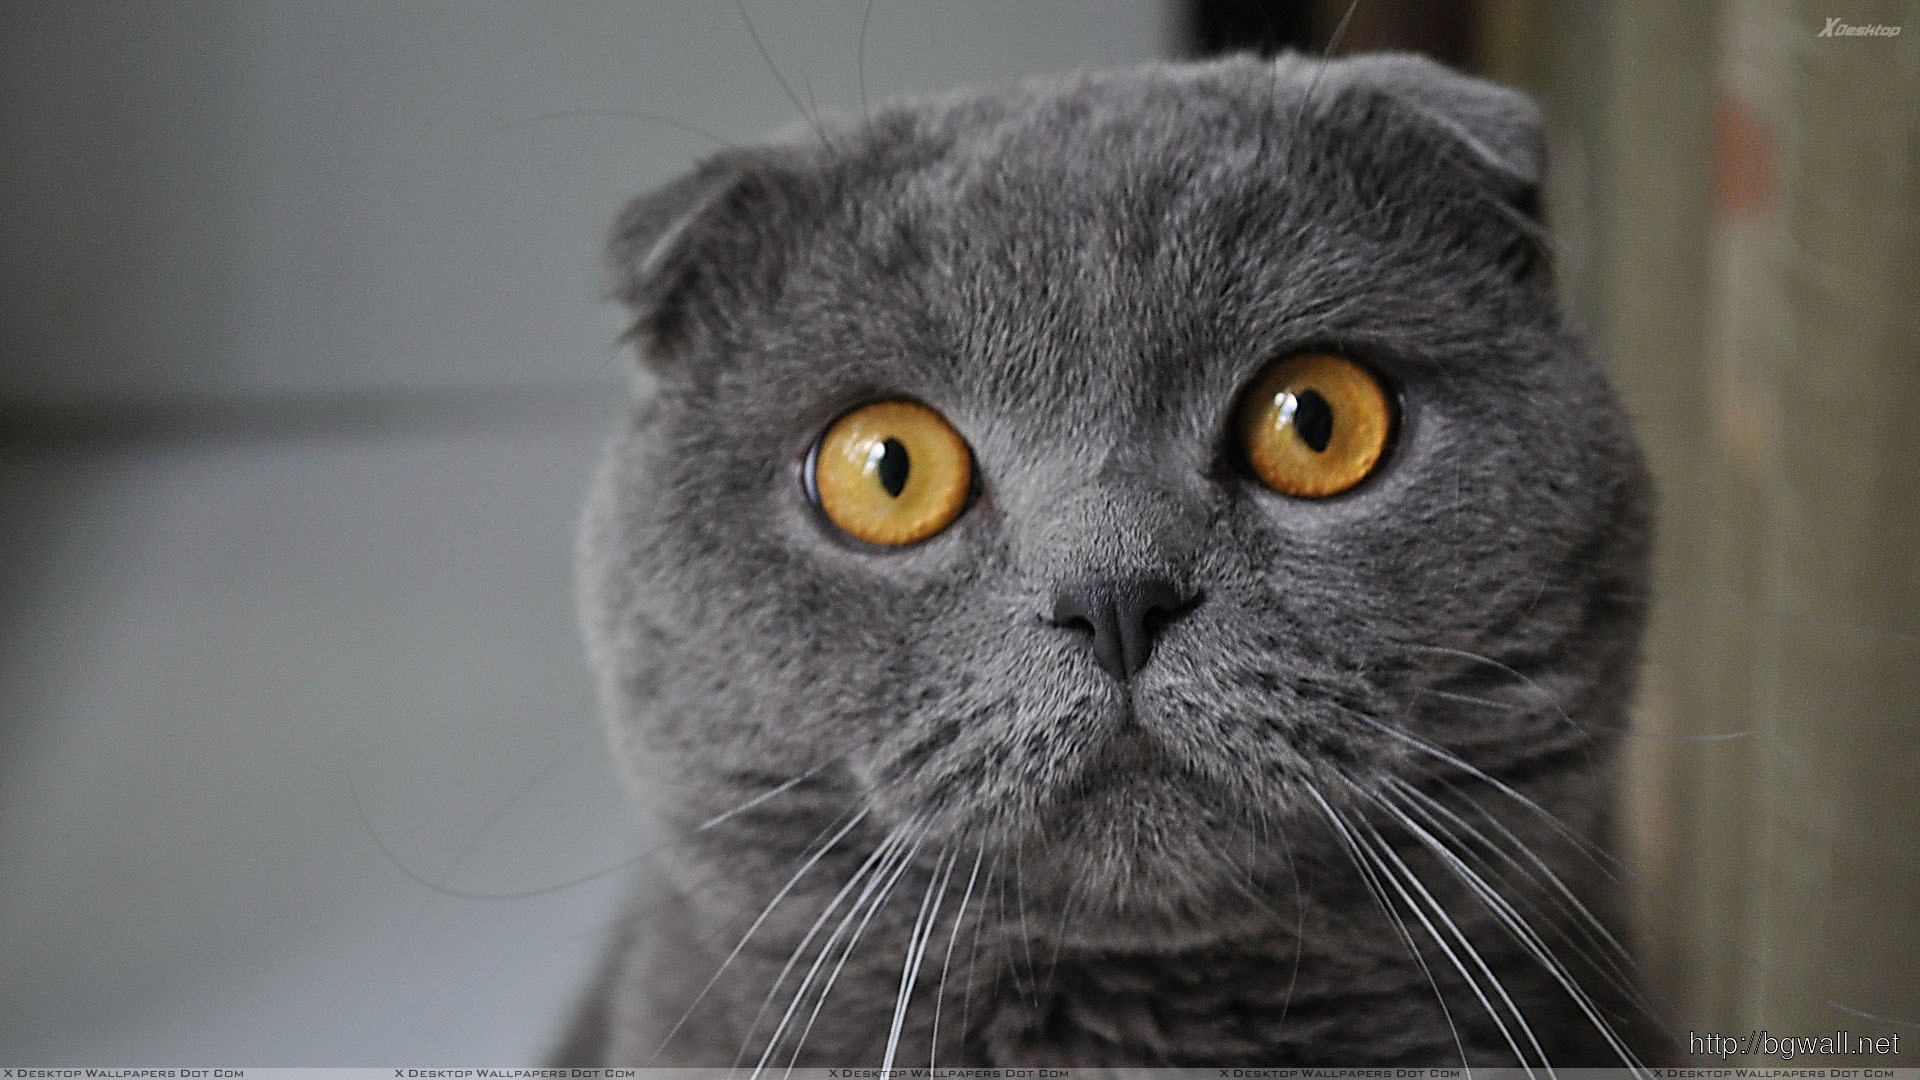 Black Cat And Brown Eyes Face Closeup Wallpaper Full Size